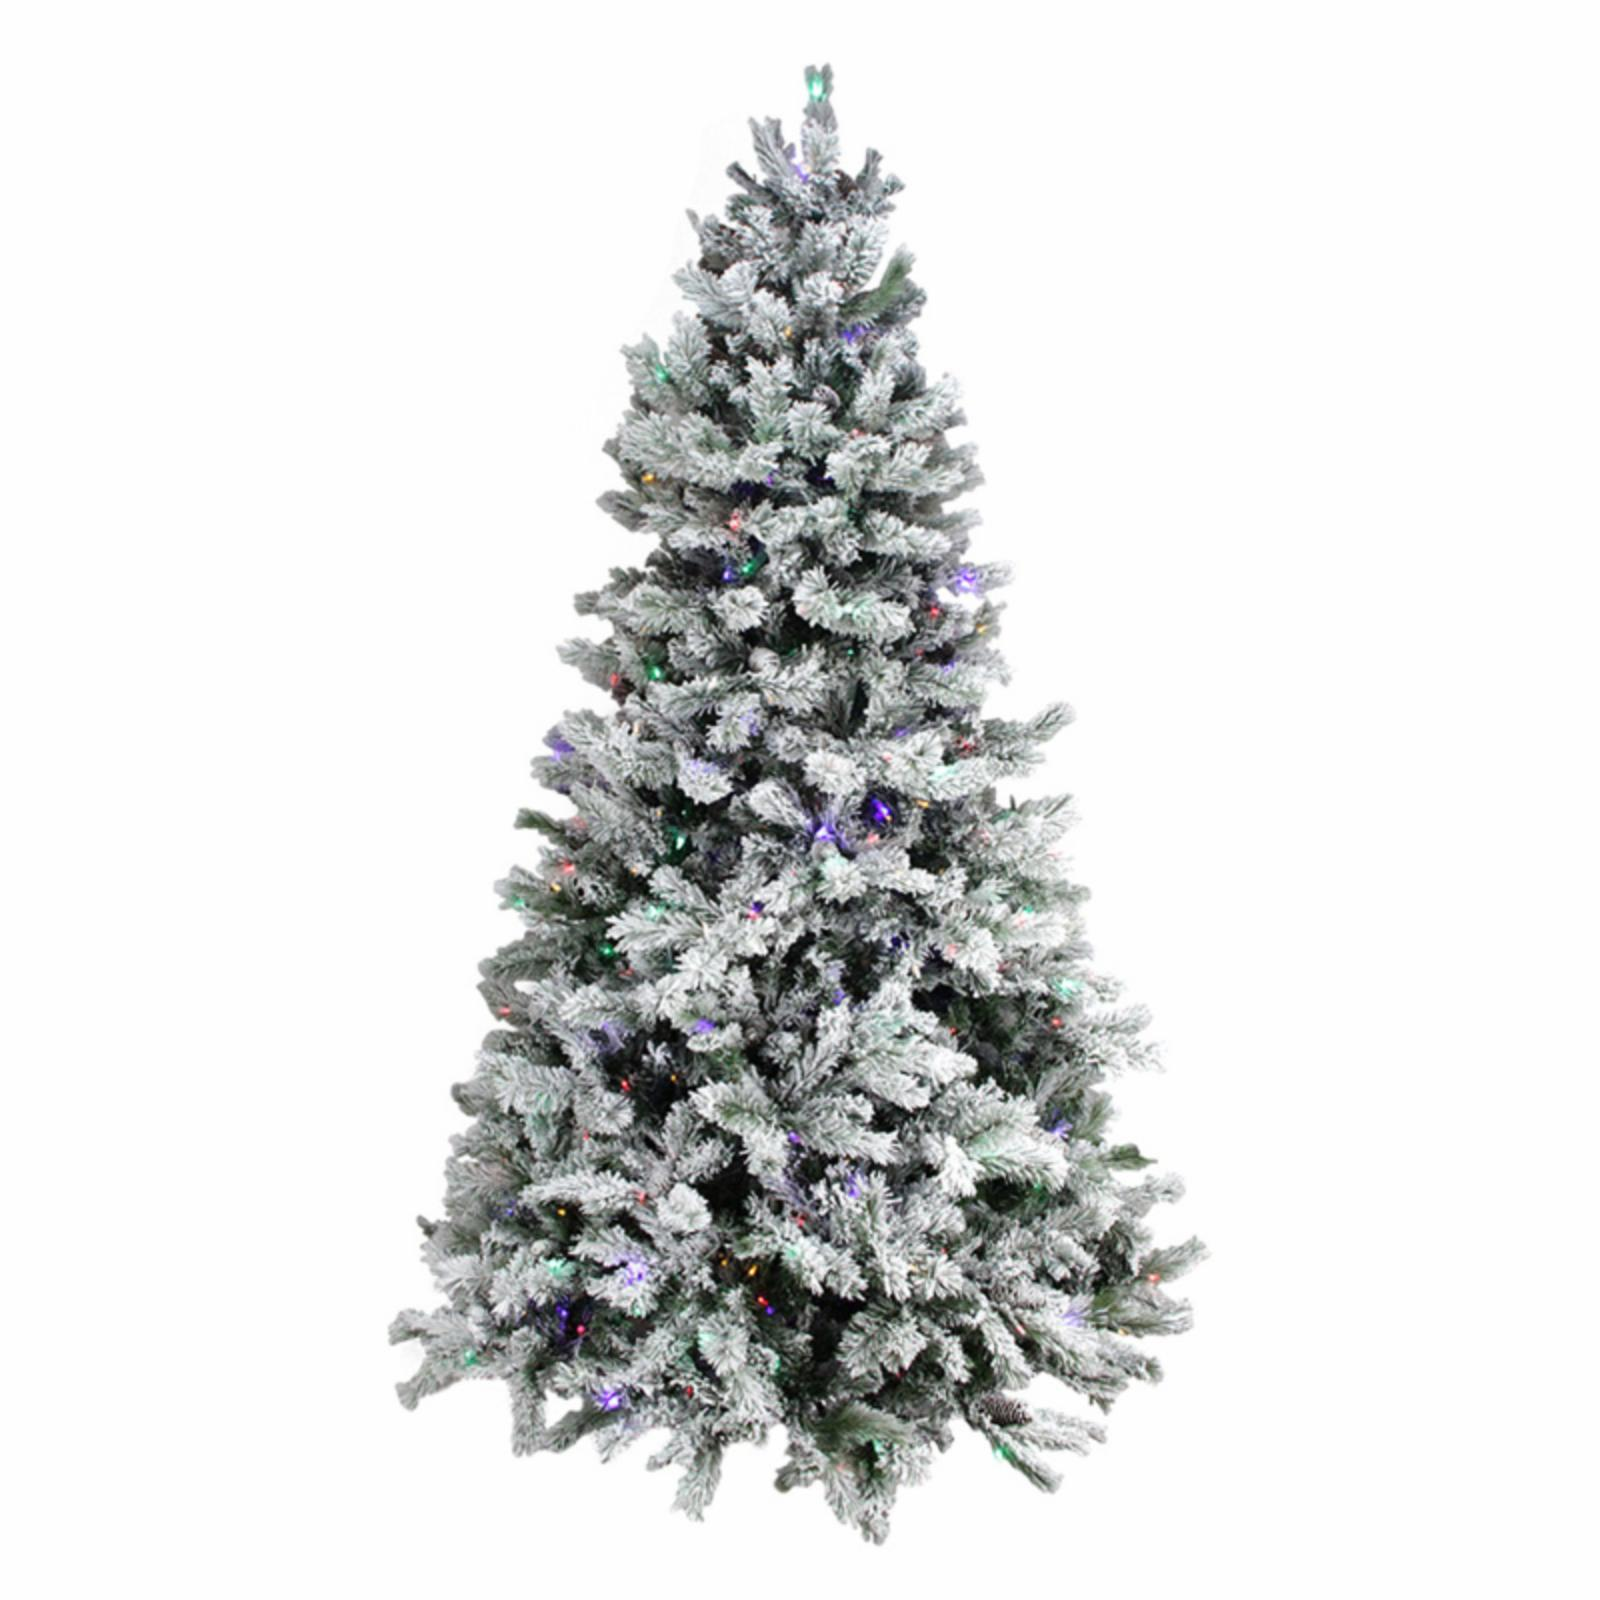 Flocked Pre Lit Christmas Tree.Details About Northlight 7 5 Ft Victoria Pine Flocked Pre Lit Christmas Tree